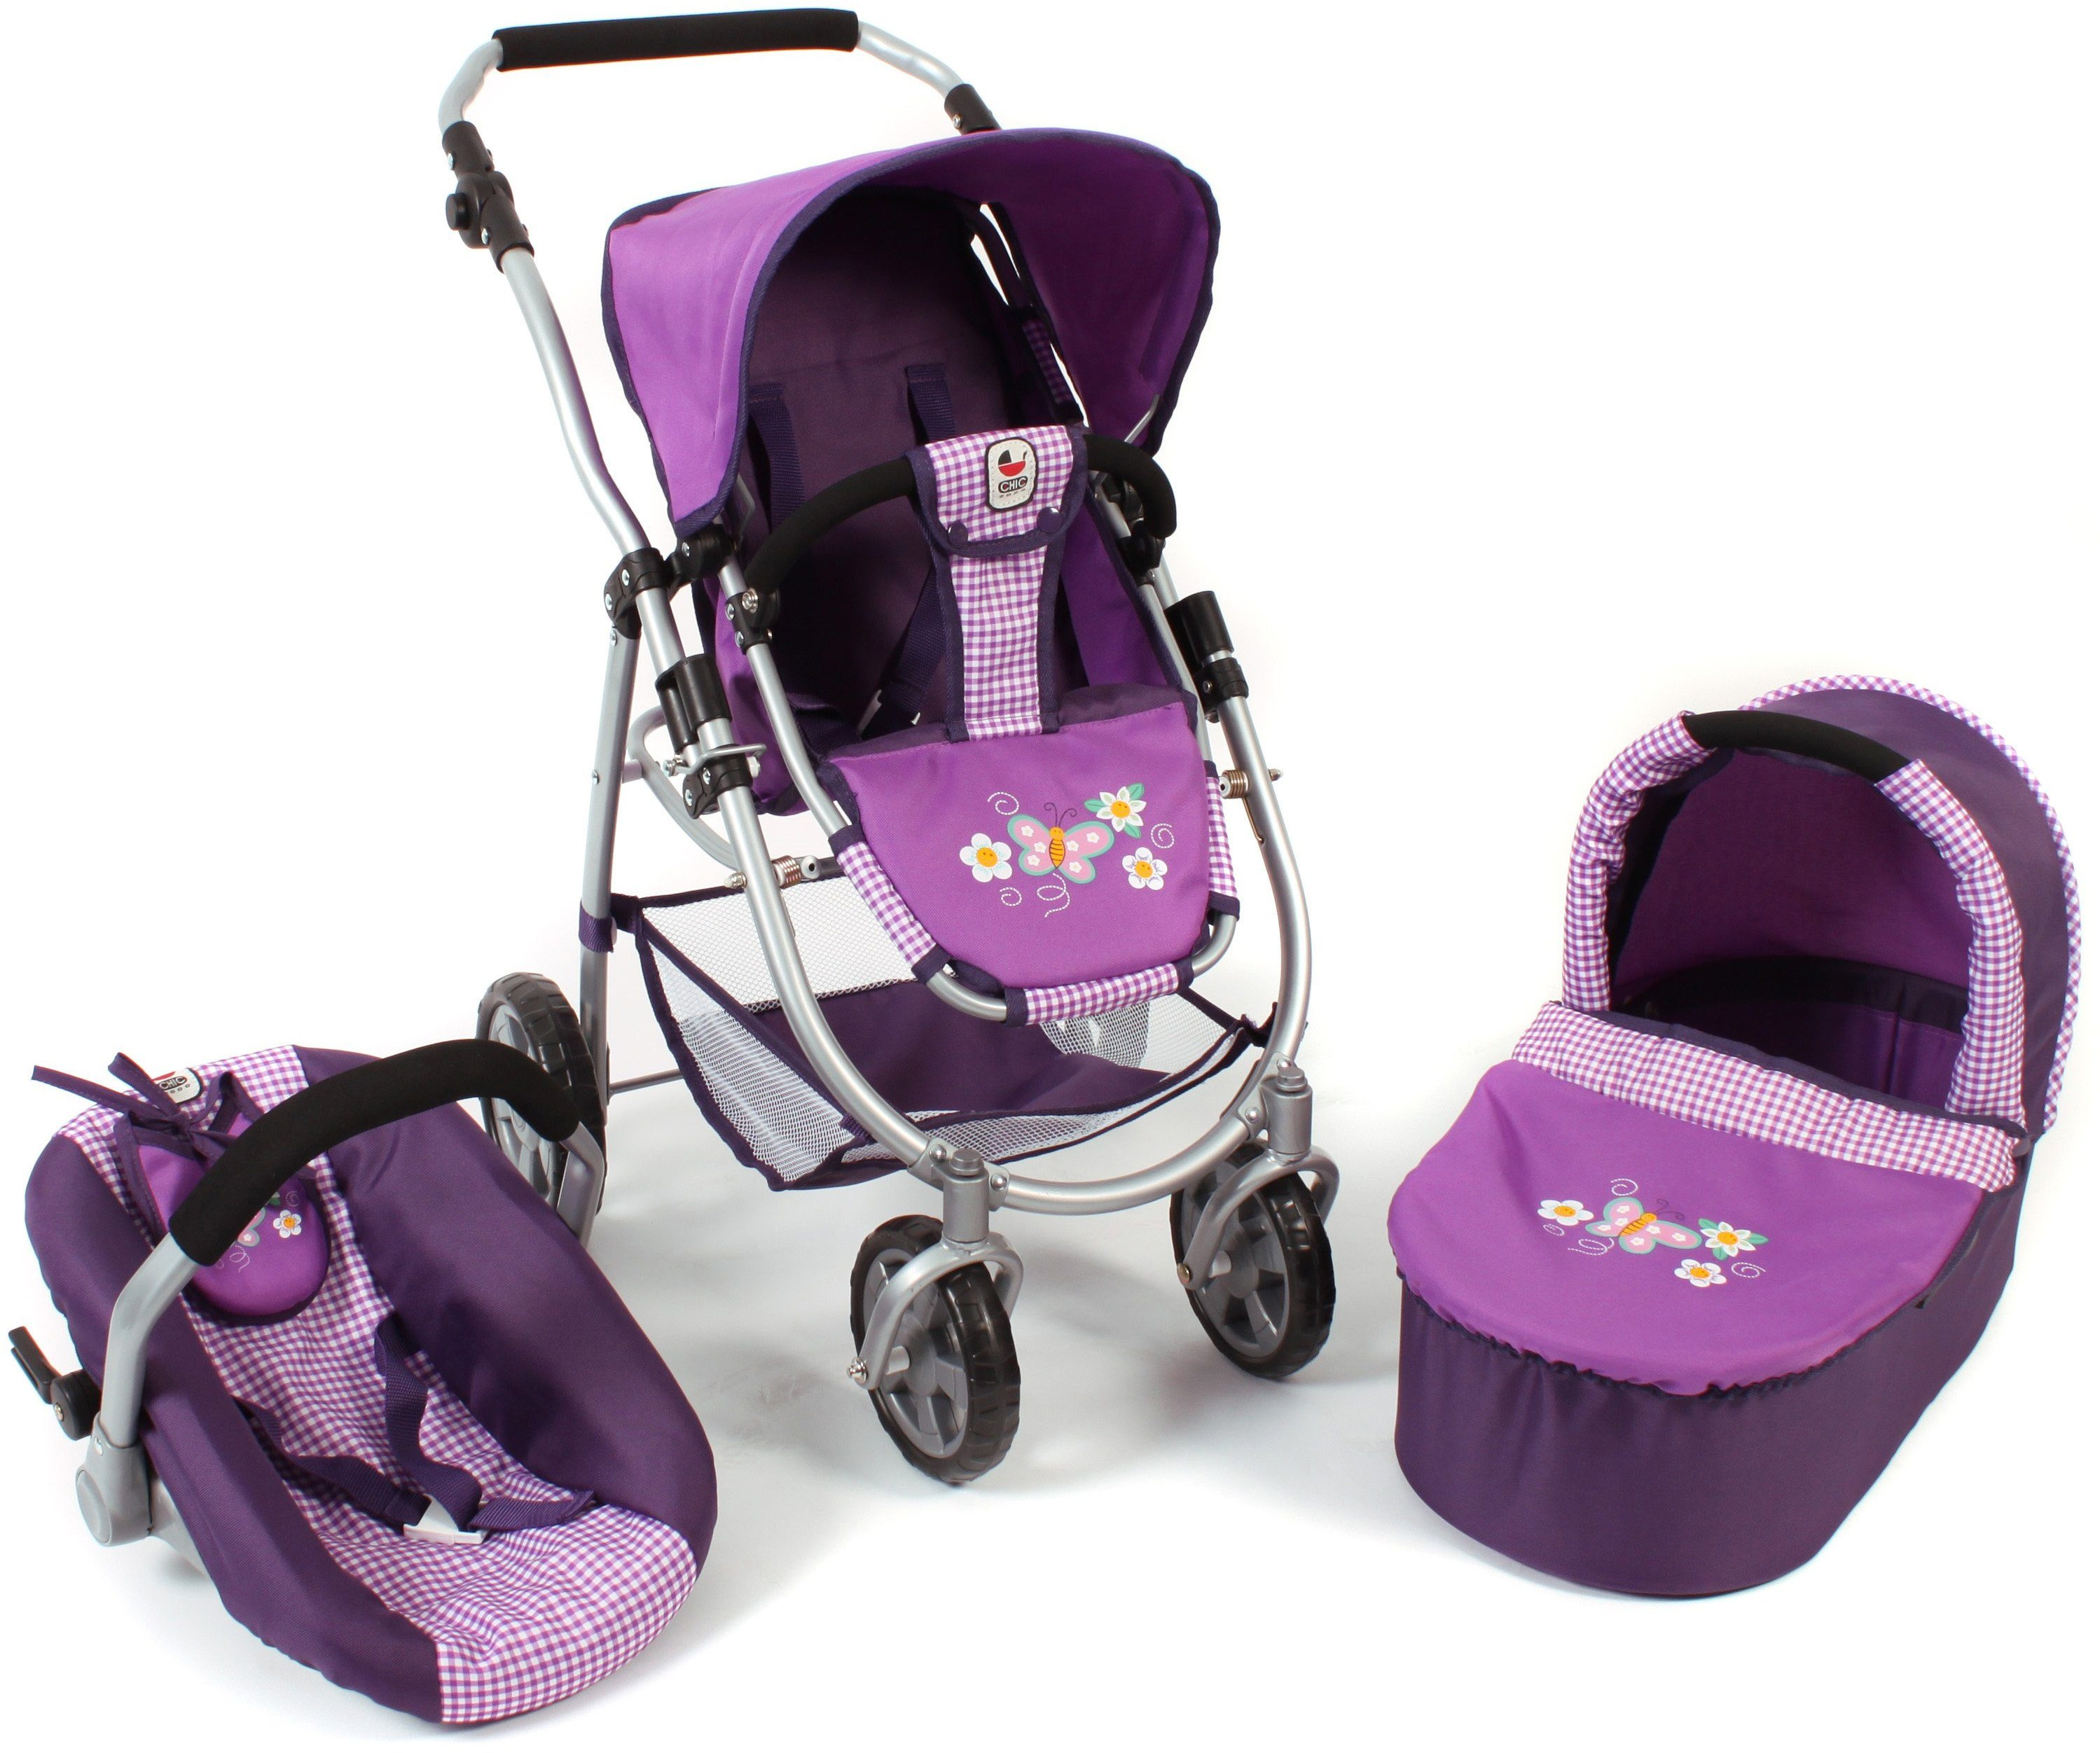 CHIC2000 3 in 1 Puppenwagen Kombi, »EMOTION ALL IN Purple«